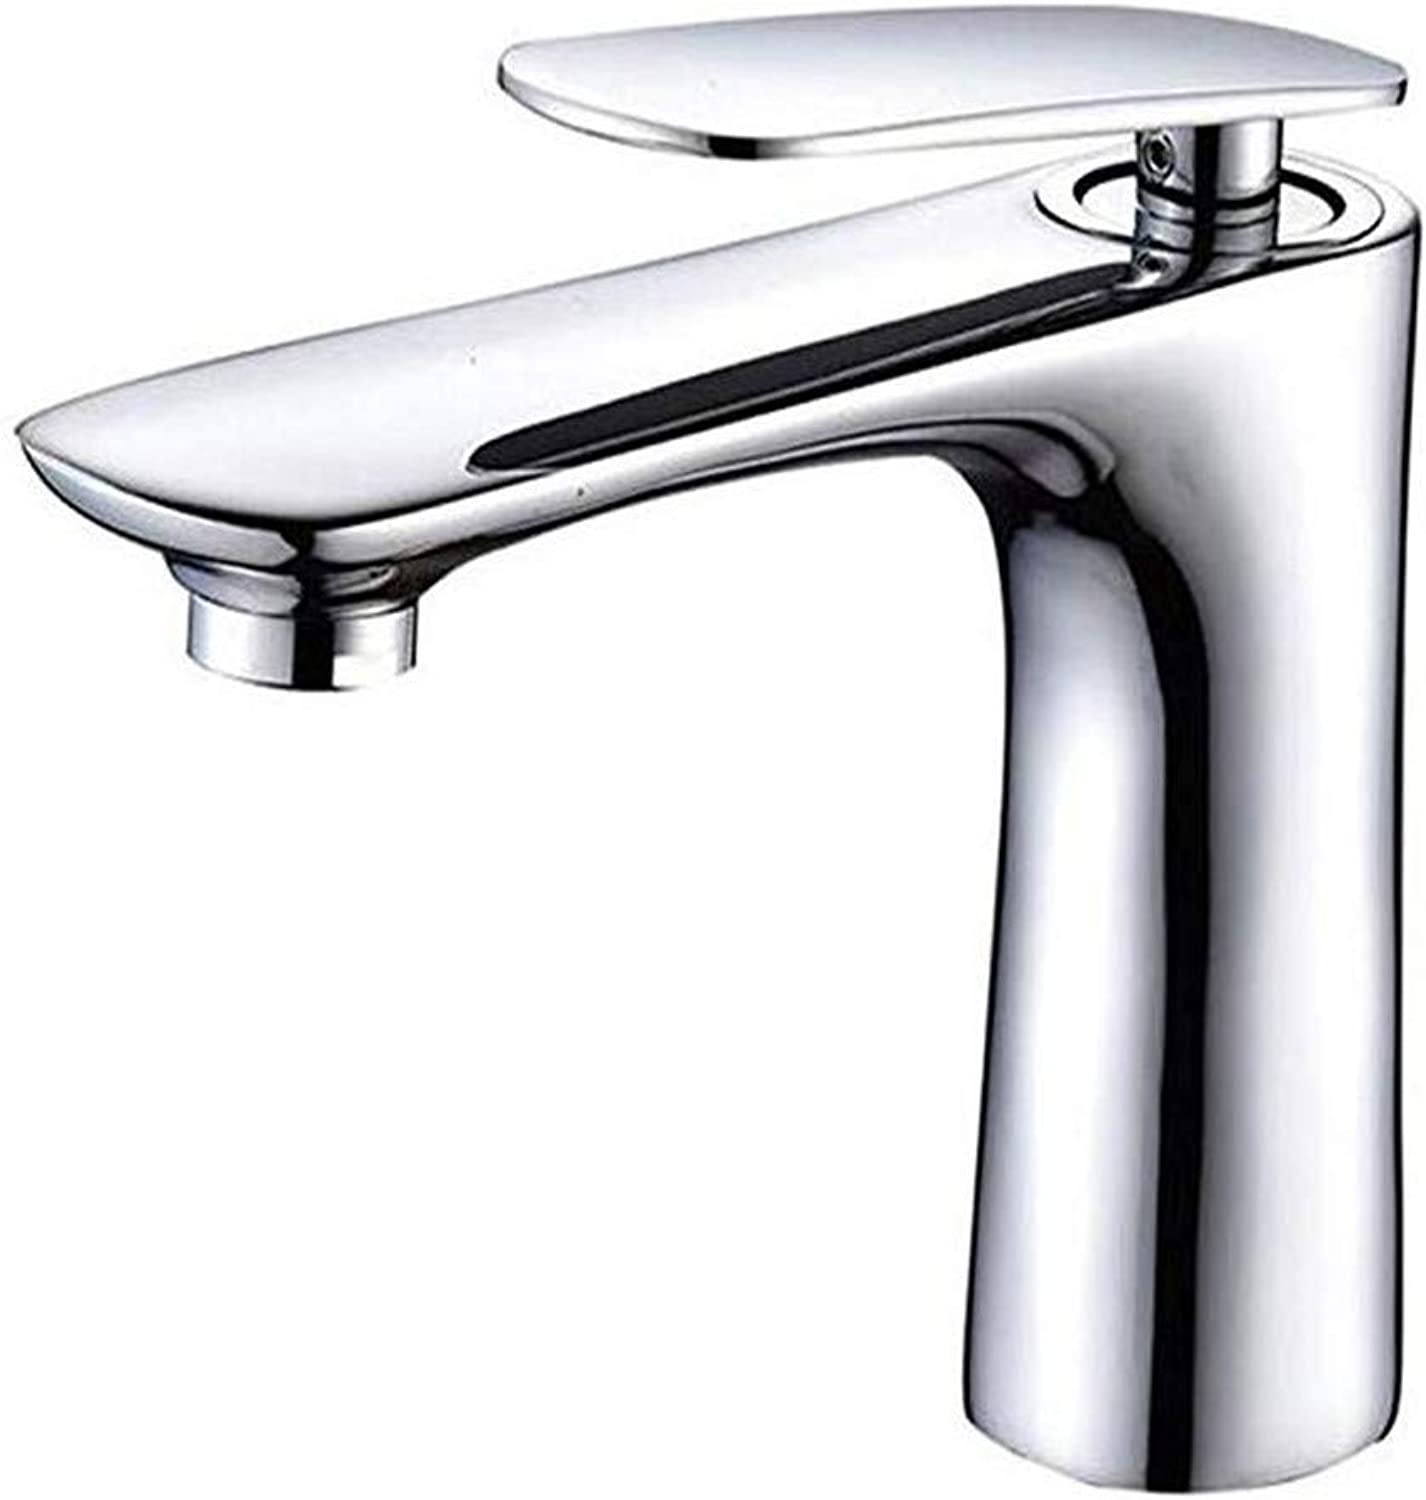 Oudan Taps Kitchen Faucetbathroom Sink Tapbathroom Single Handle Copper Hot and Cold Classic Brushed (color   -, Size   -)